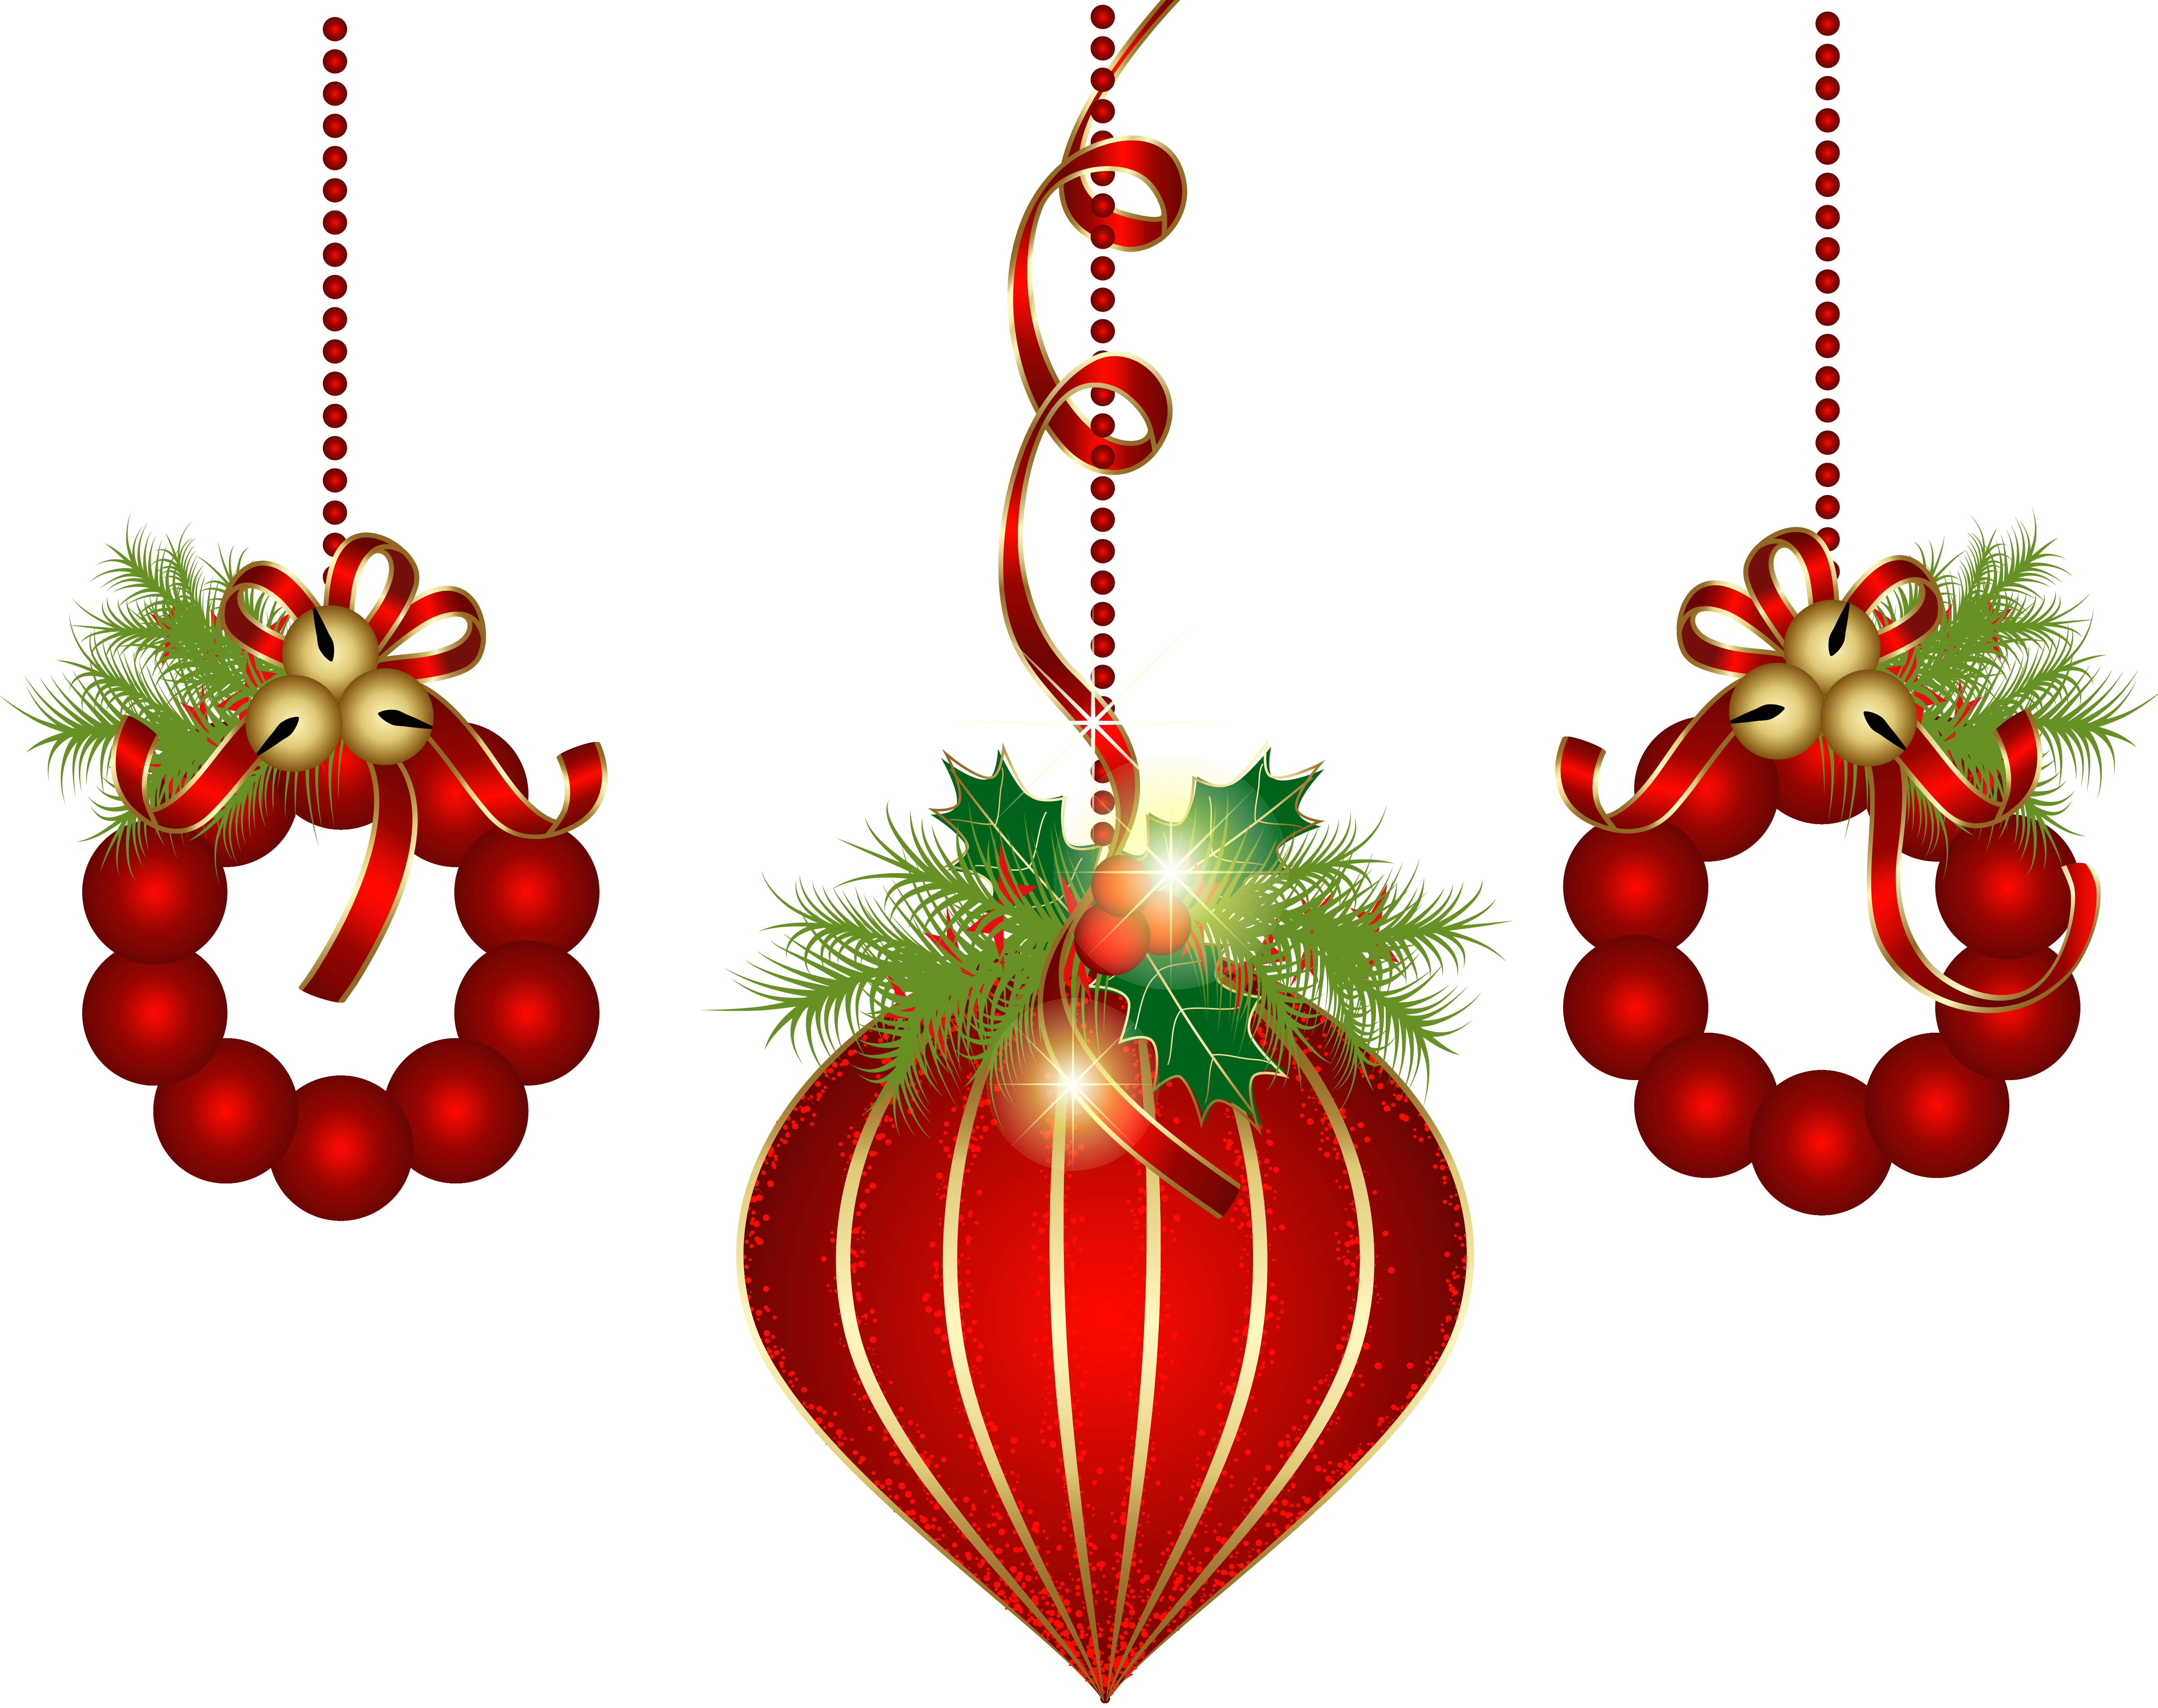 Motorcycle clipart christmas. Transparent red ornaments png